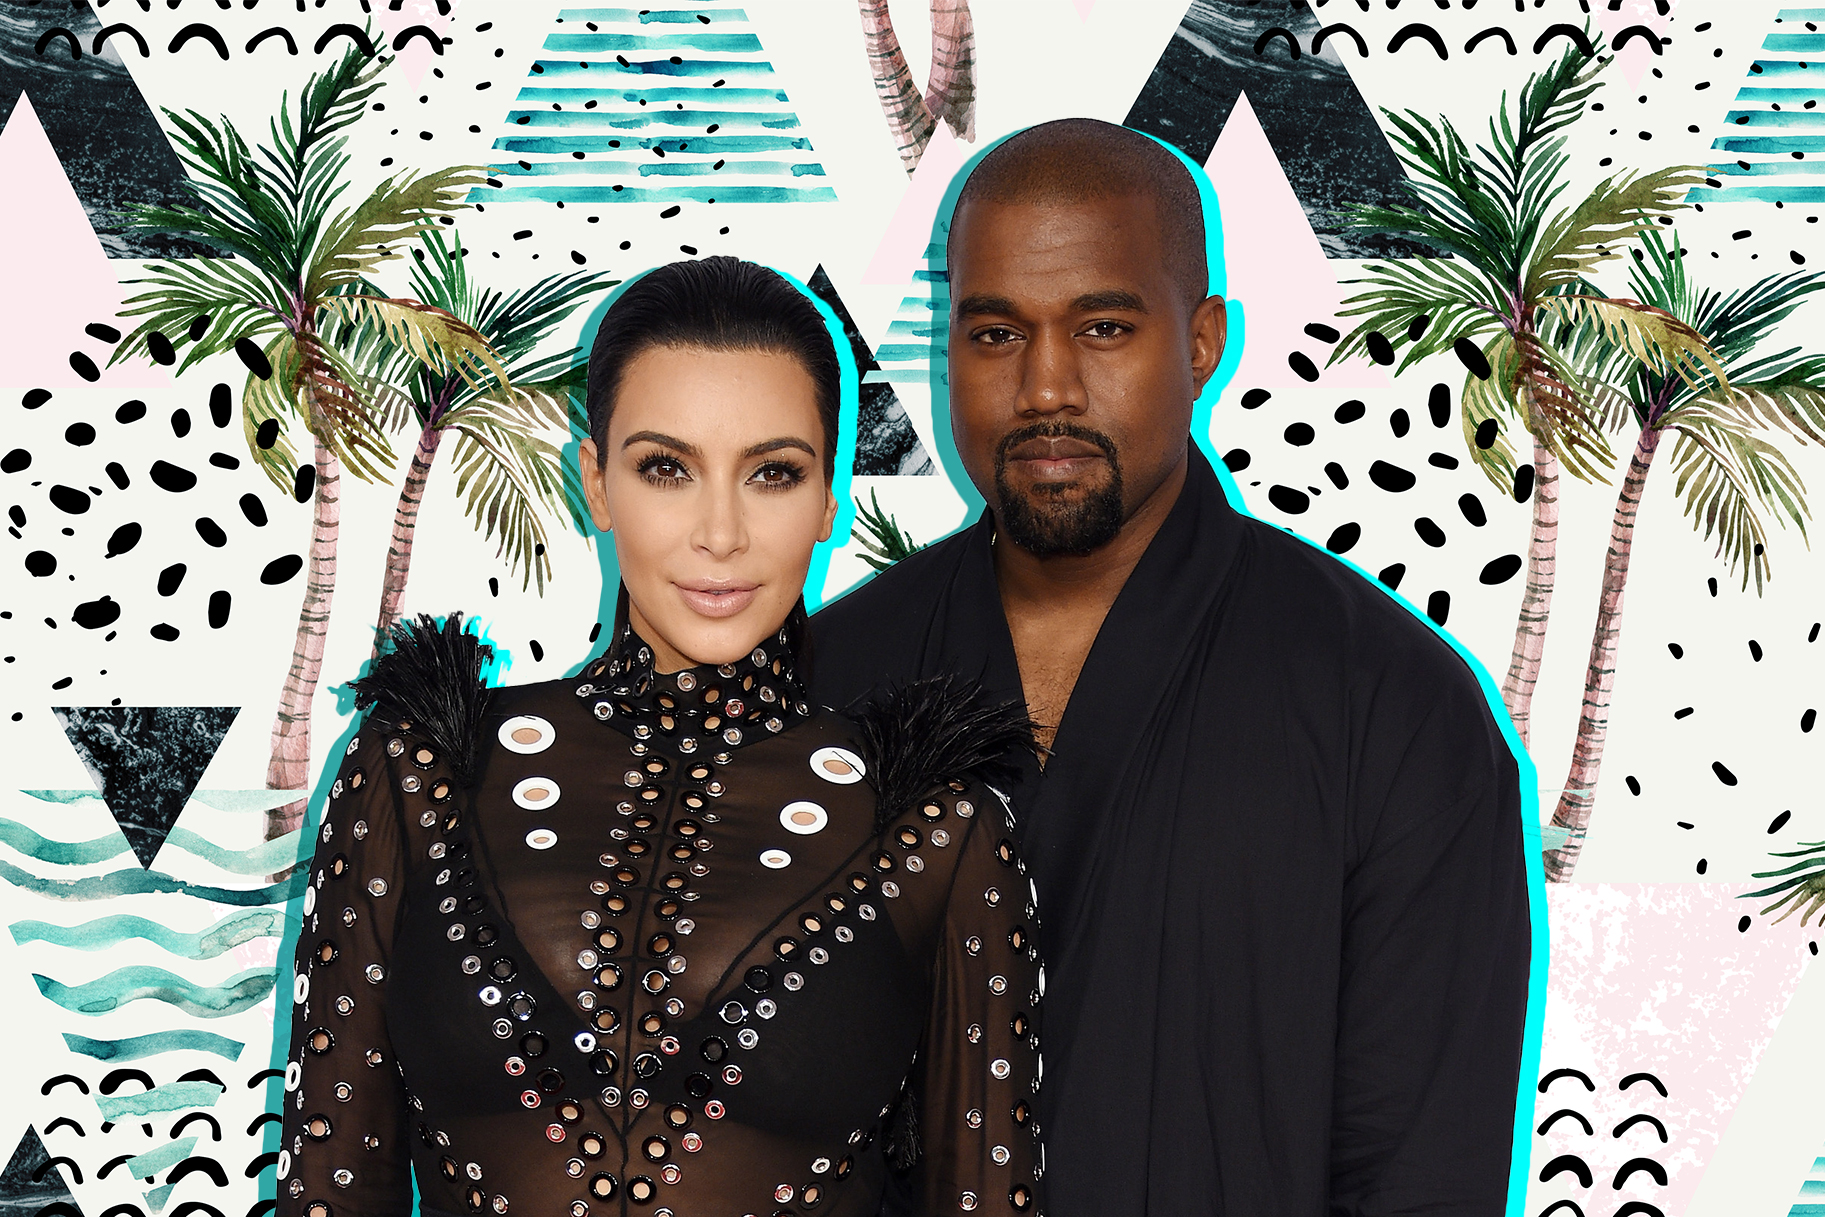 Kanye West Backs Out of Miami Condo Purchase After Gifting it to Kim Kardashian for Christmas (UPDATE)